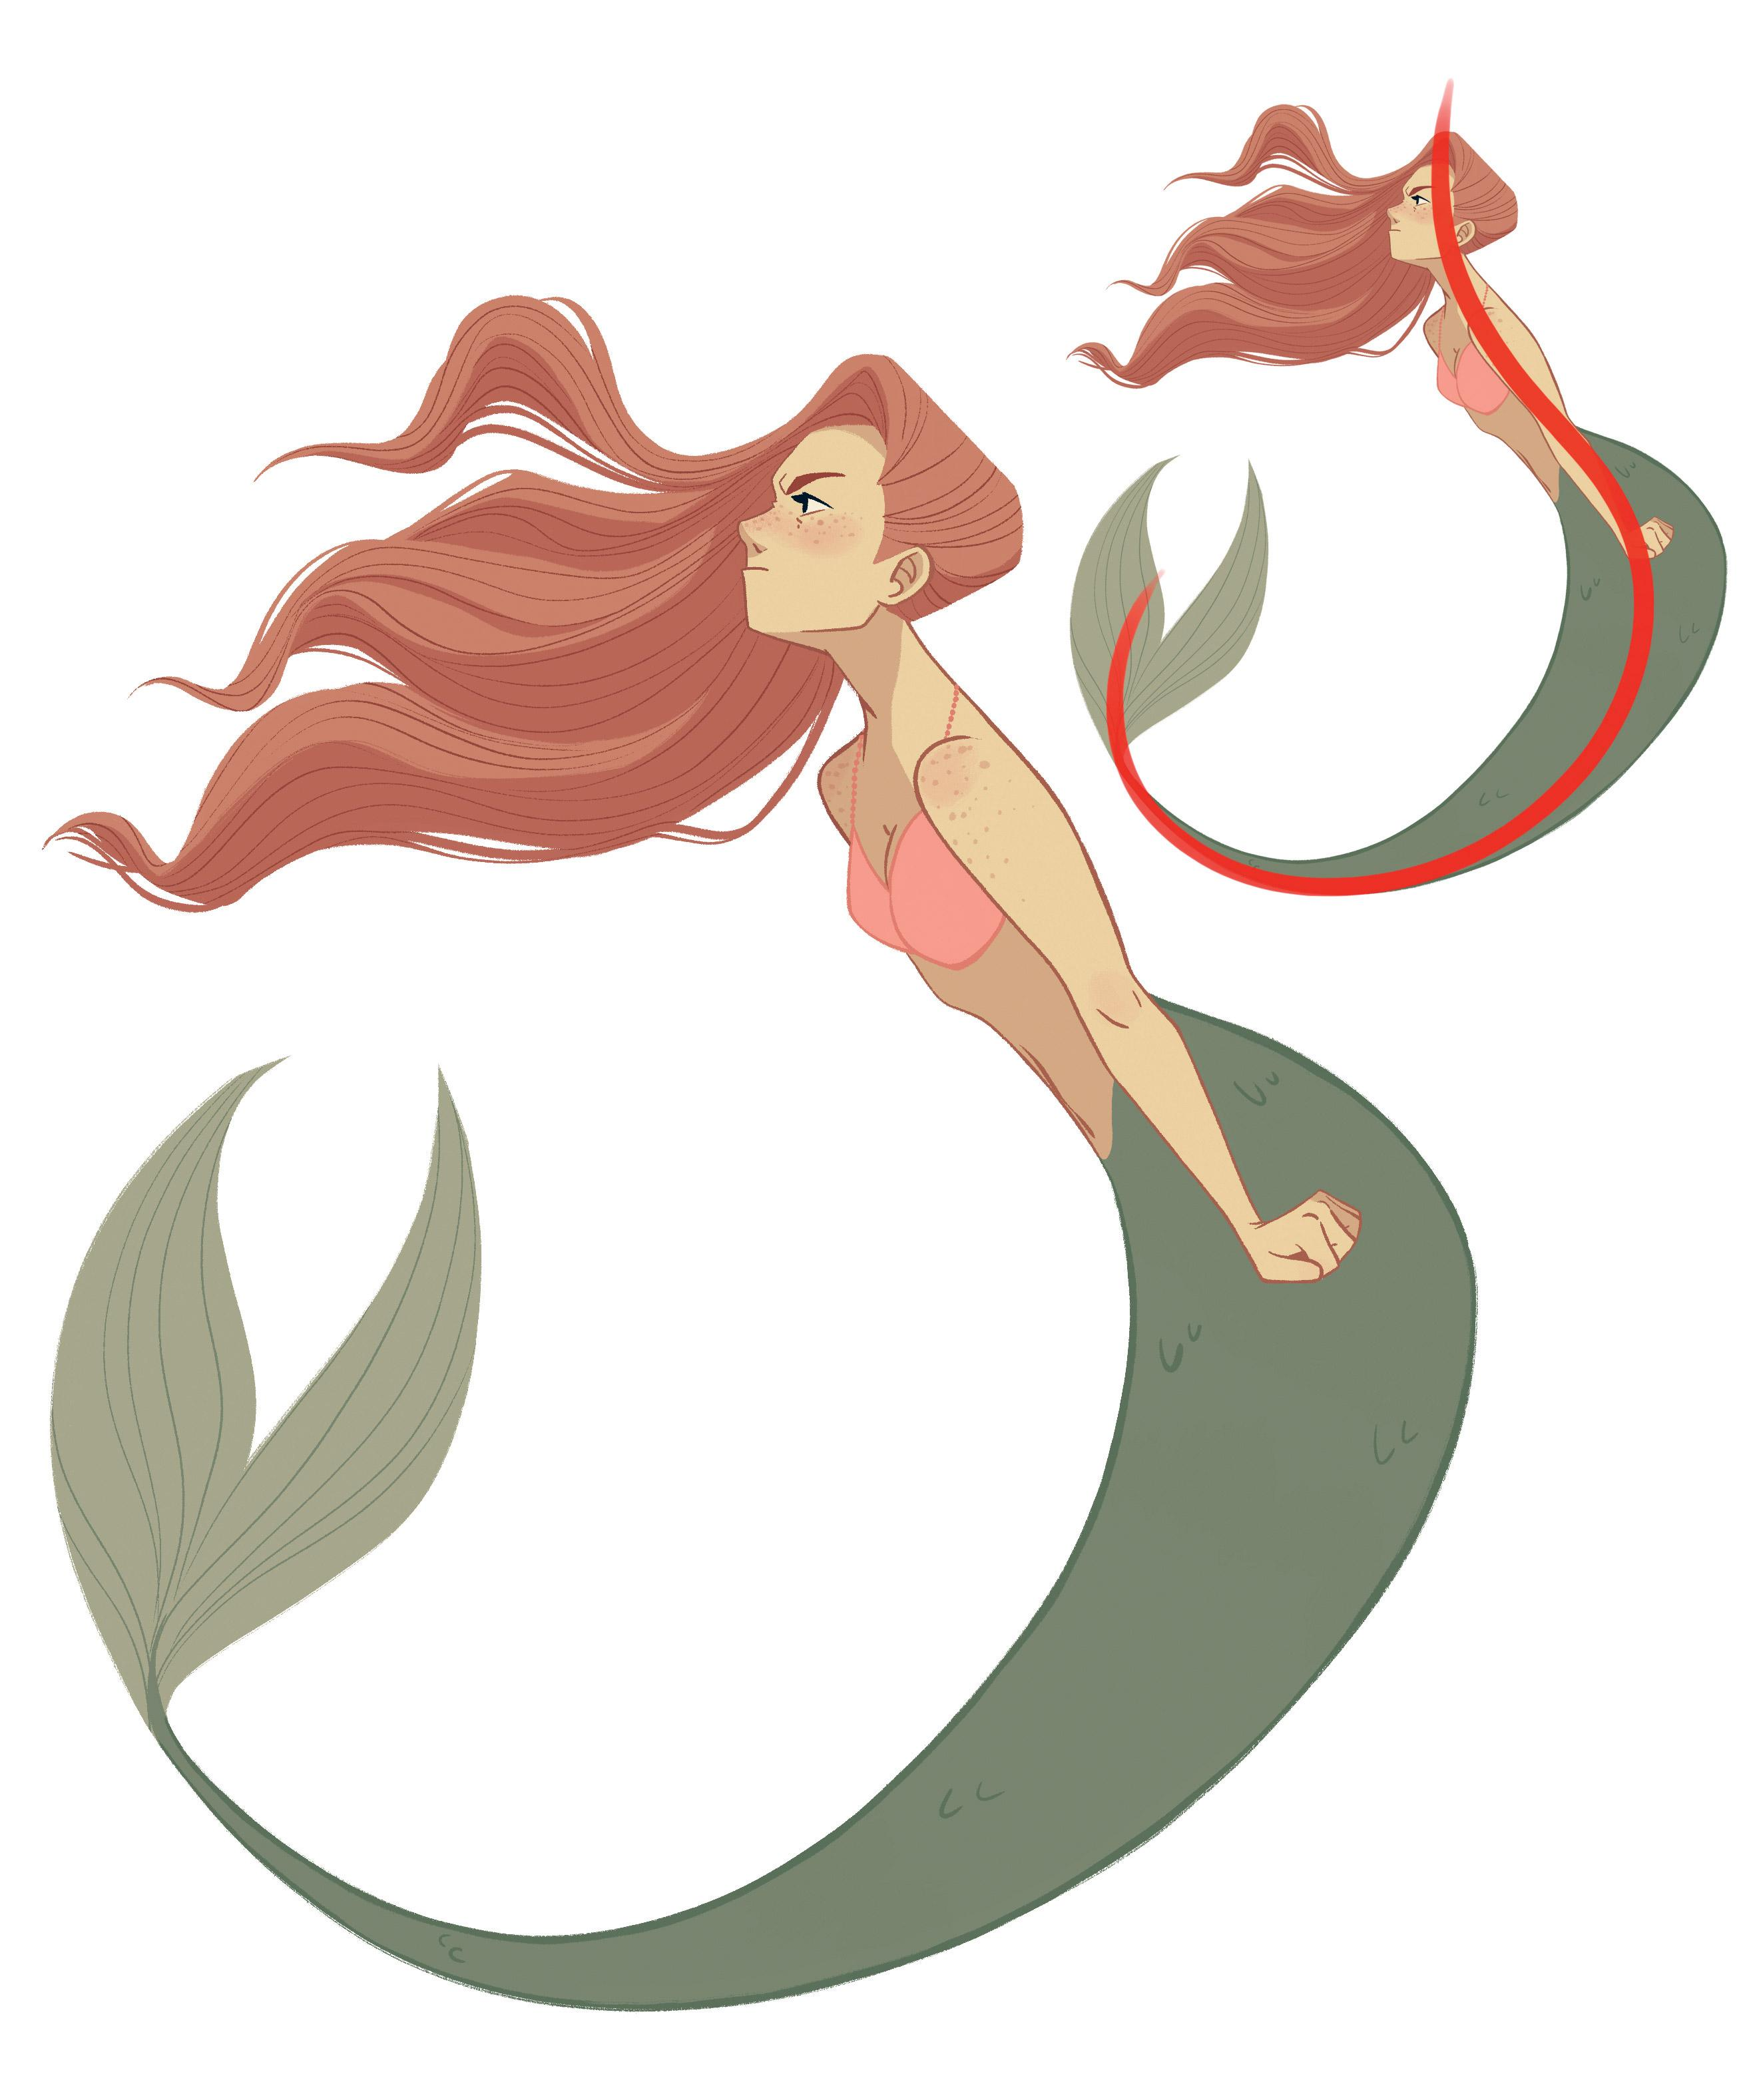 A mermaid curled over with a line of action laid over top